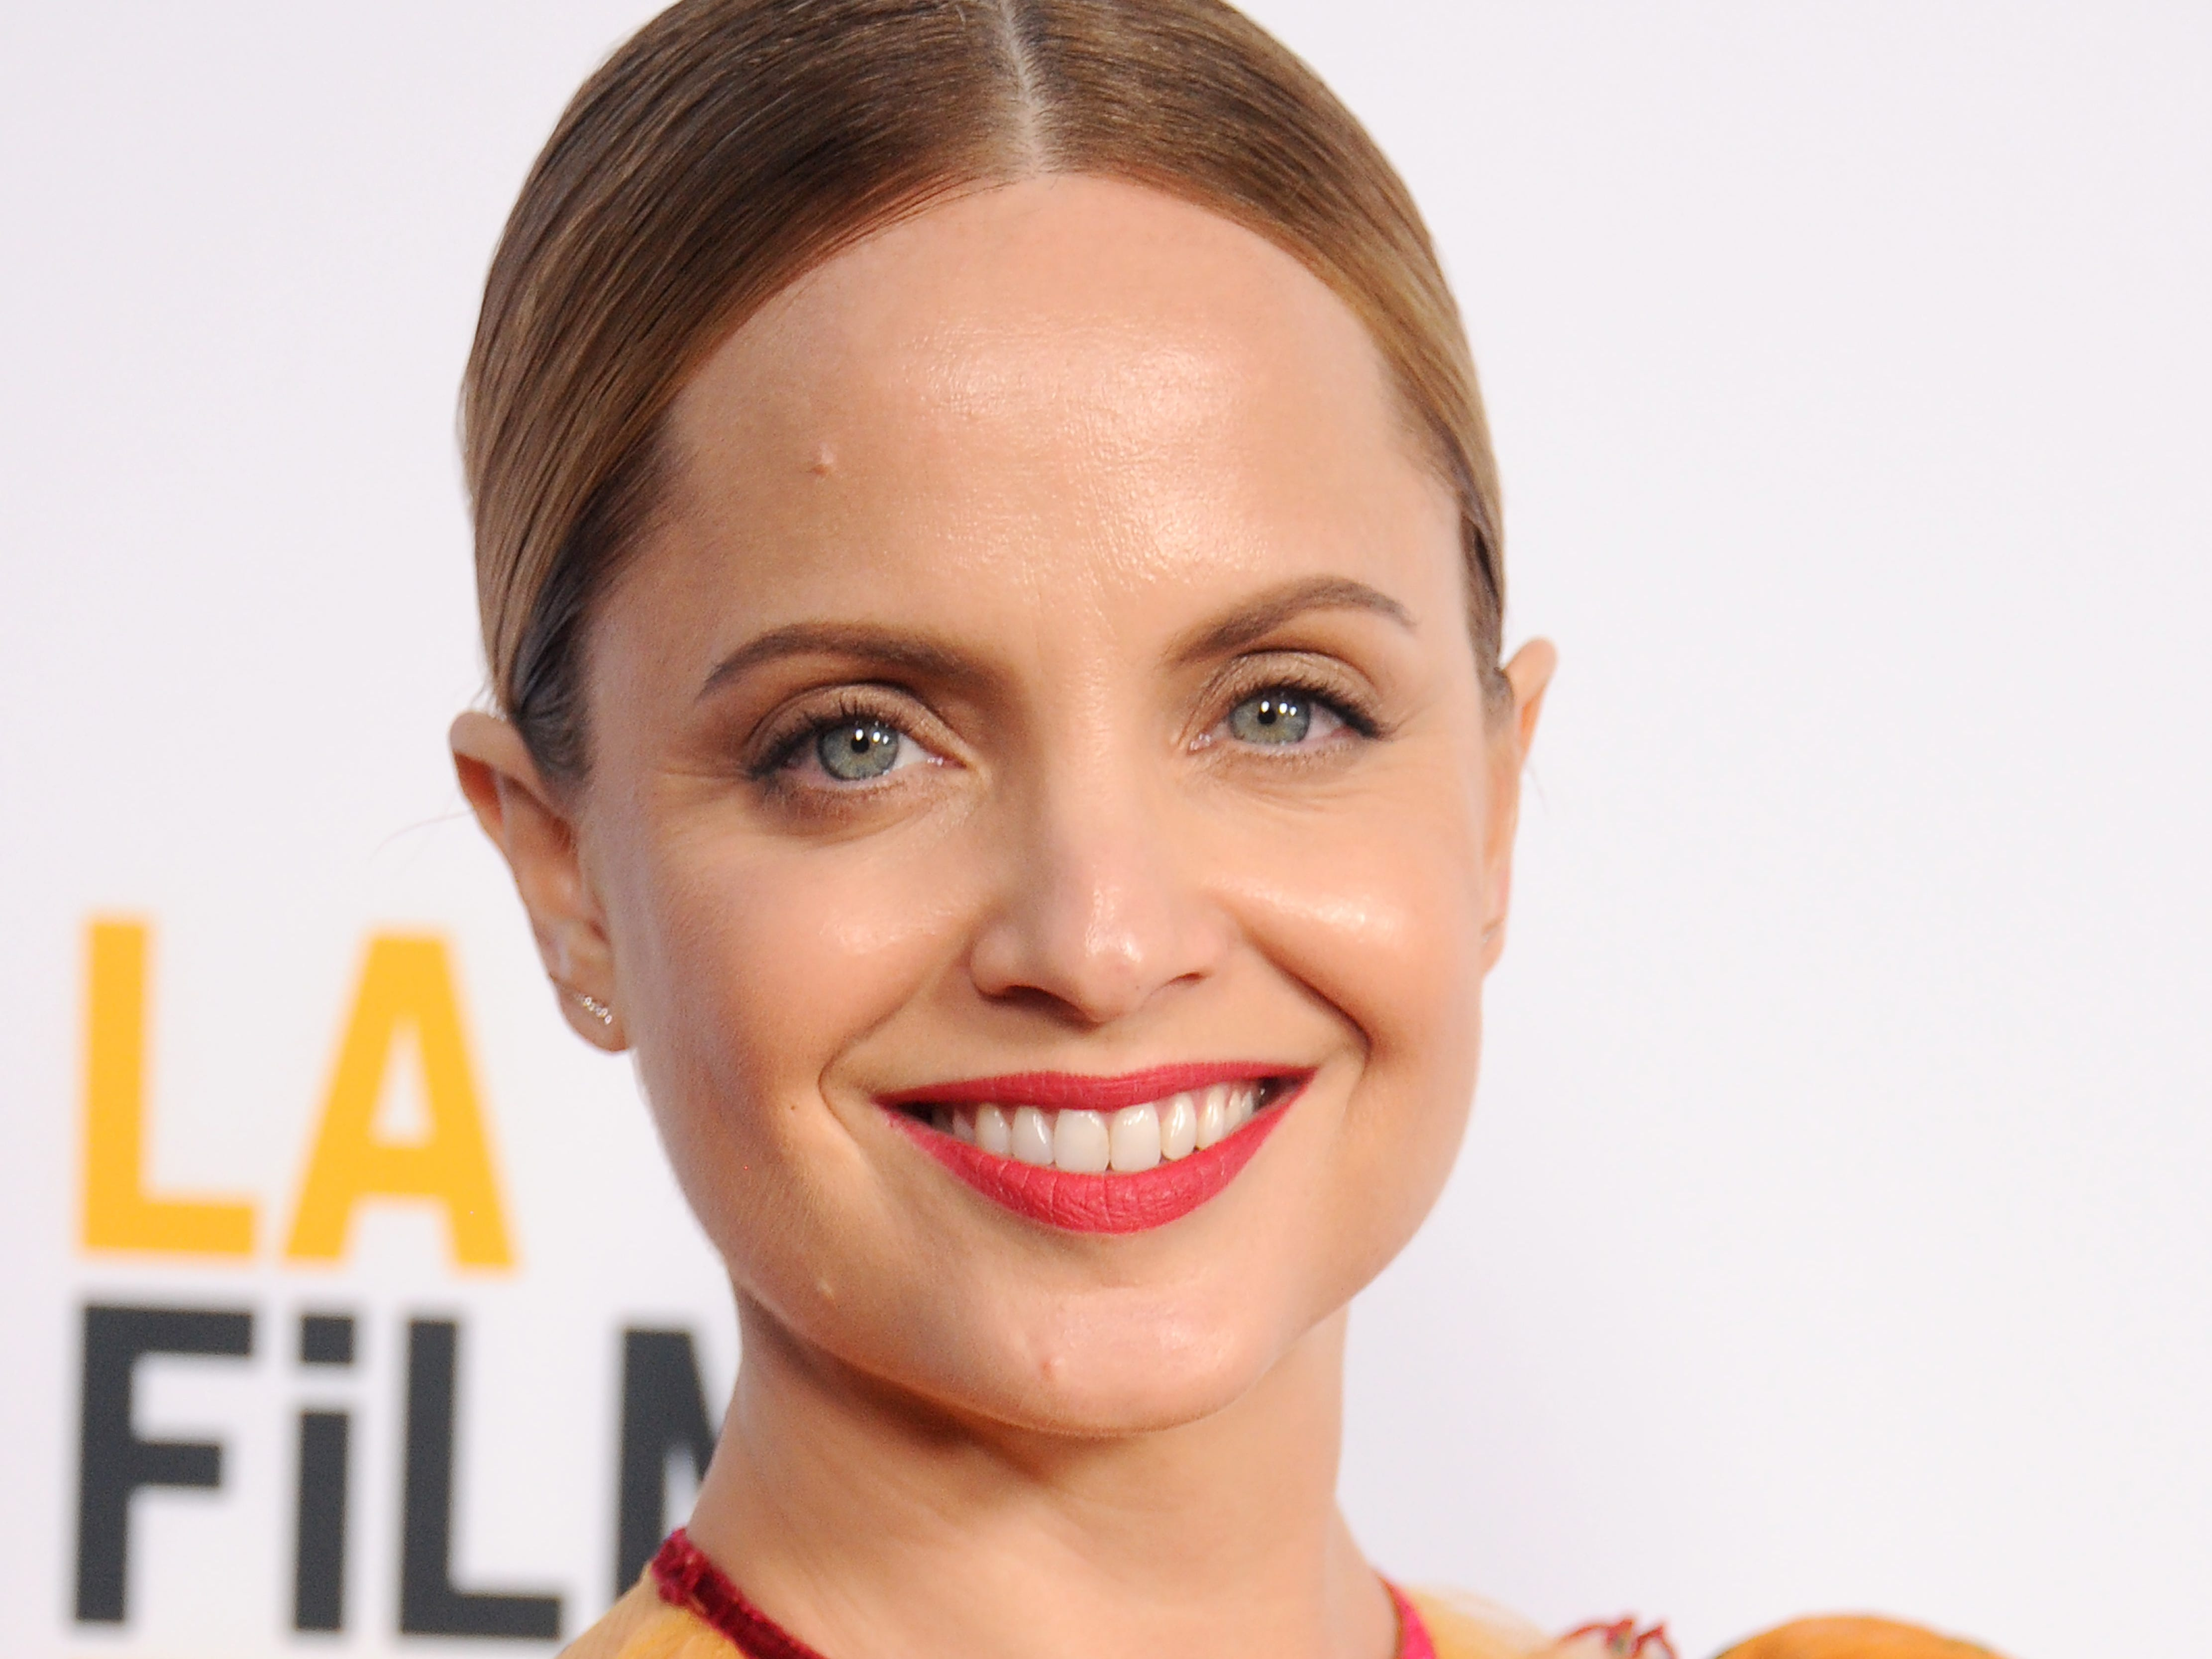 "CULVER CITY, CA - JUNE 15:  Actress Mena Suvari arrives at the 2017 Los Angeles Film Festival - Premiere Of ""Becks"" at Arclight Cinemas Culver City on June 15, 2017 in Culver City, California.  (Photo by Gregg DeGuire/WireImage) ORG XMIT: 700066045 ORIG FILE ID: 696456094"